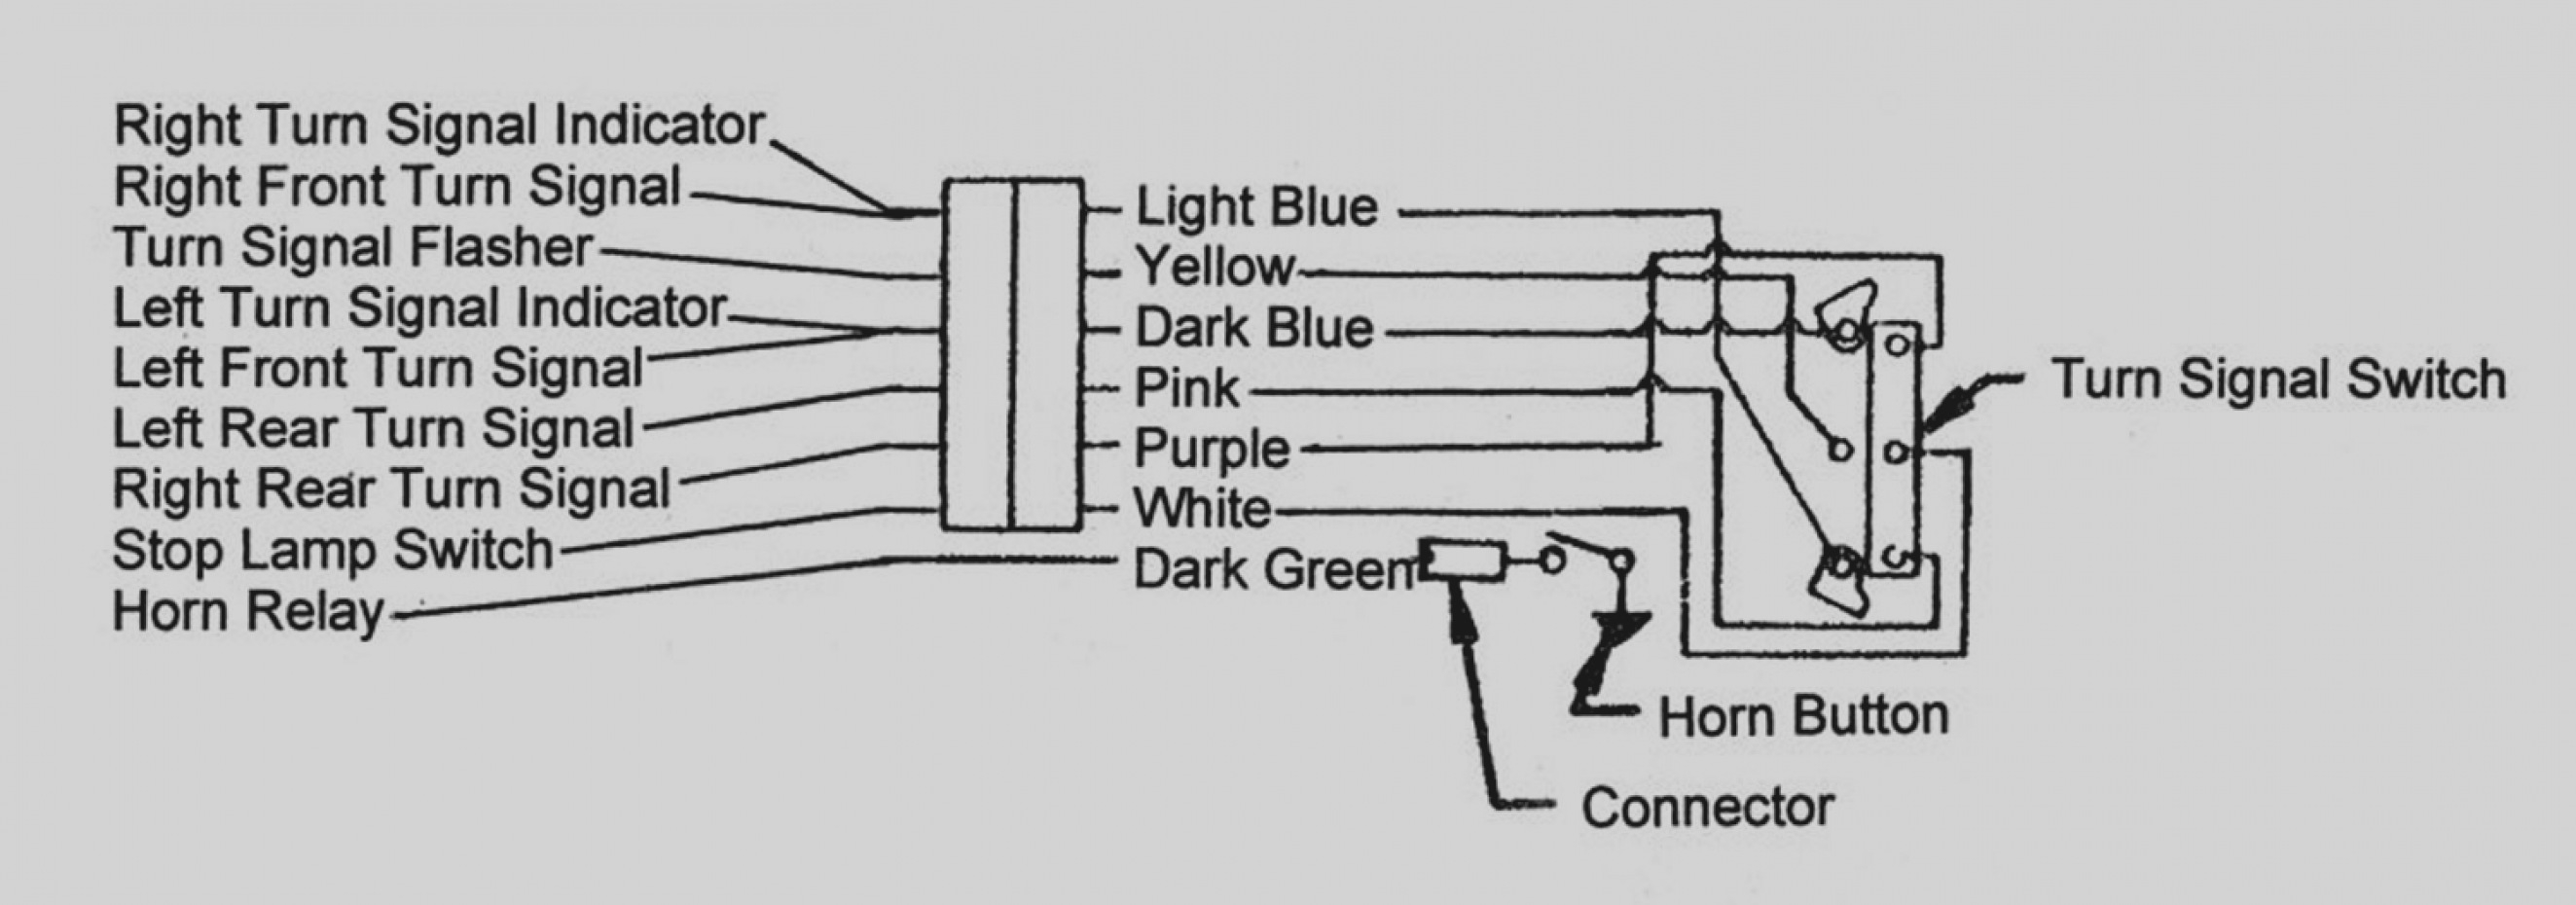 Wiring Diagram For Turn Signals | Turn Signal Wiring Diagram Gm |  | Wiring Diagram